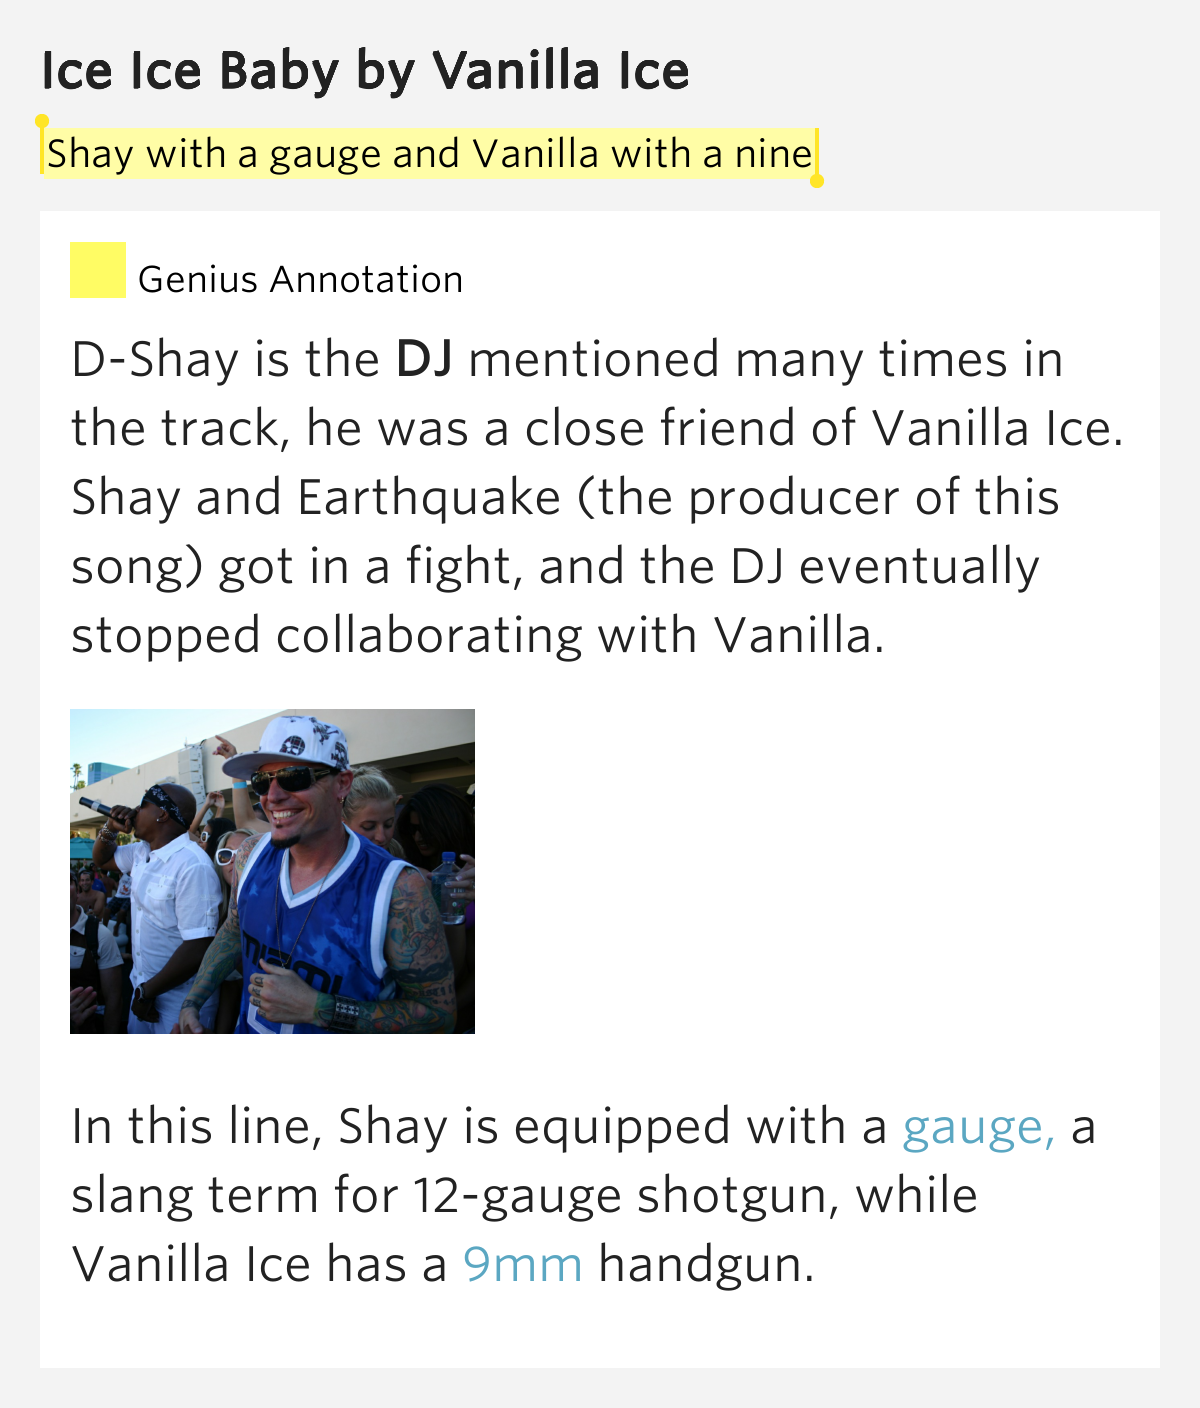 Shay with a gauge and Vanilla with a nine – Ice Ice Baby